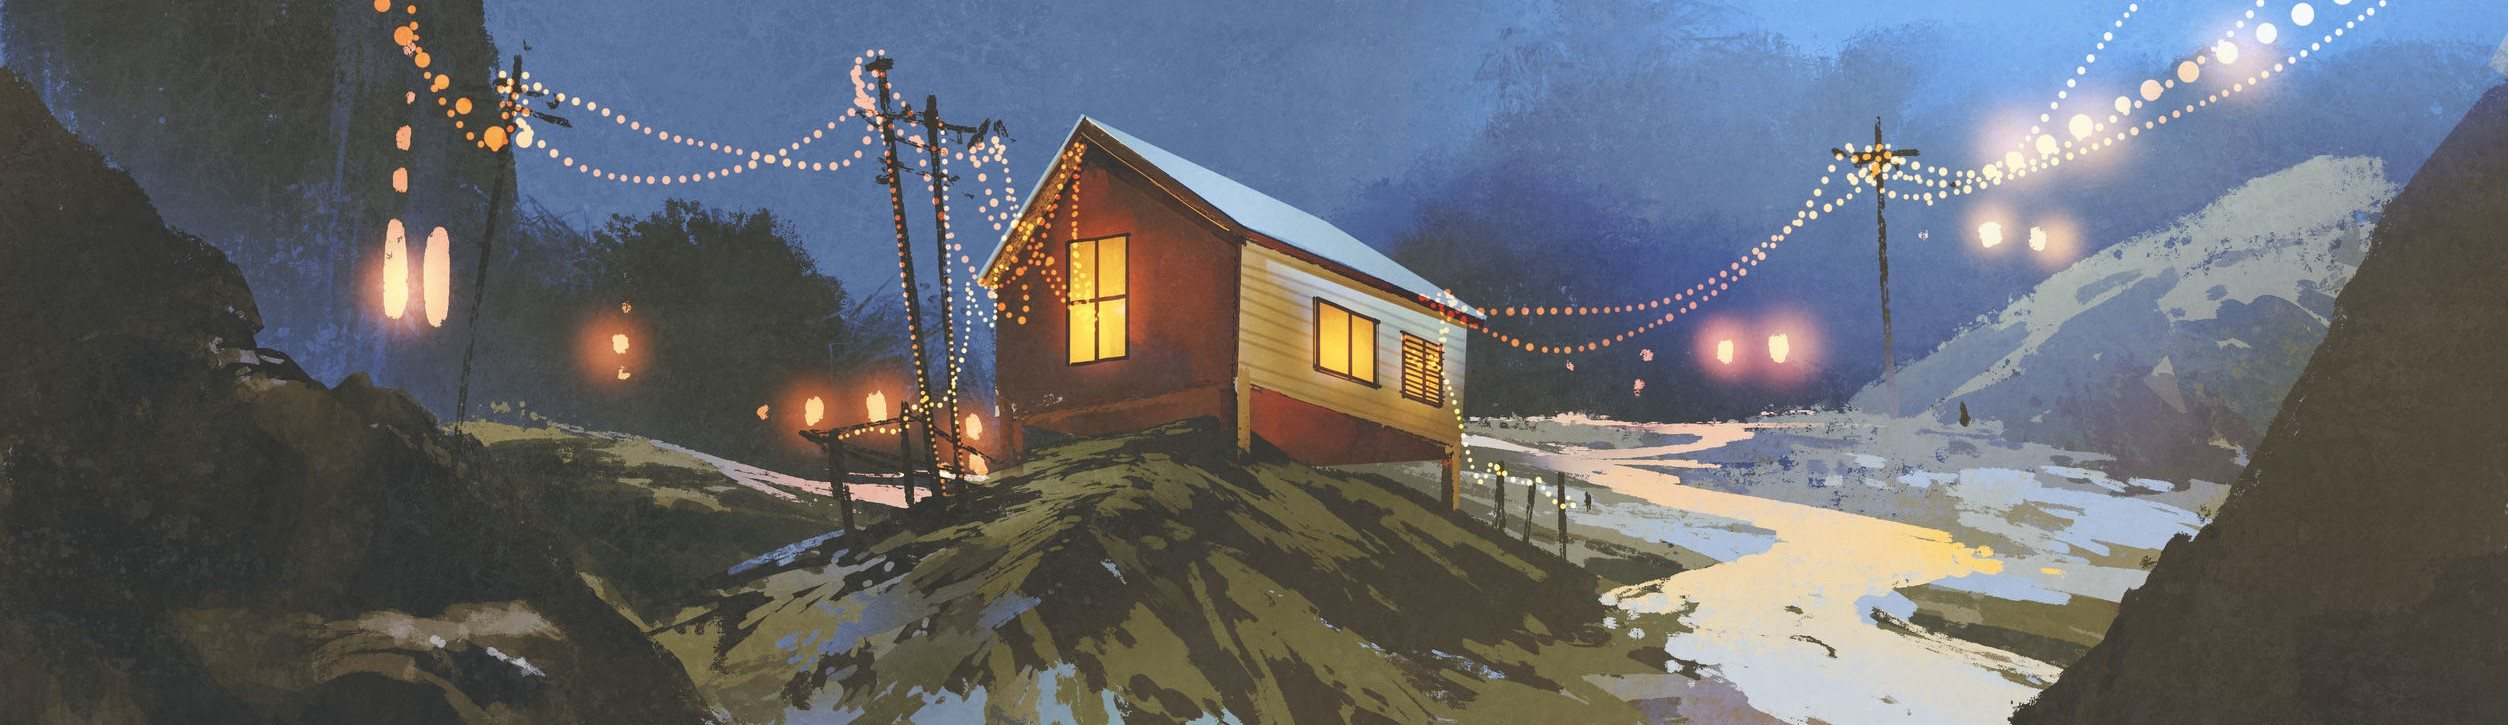 night scenery of wooden houses in the mountain in winter, illustration painting